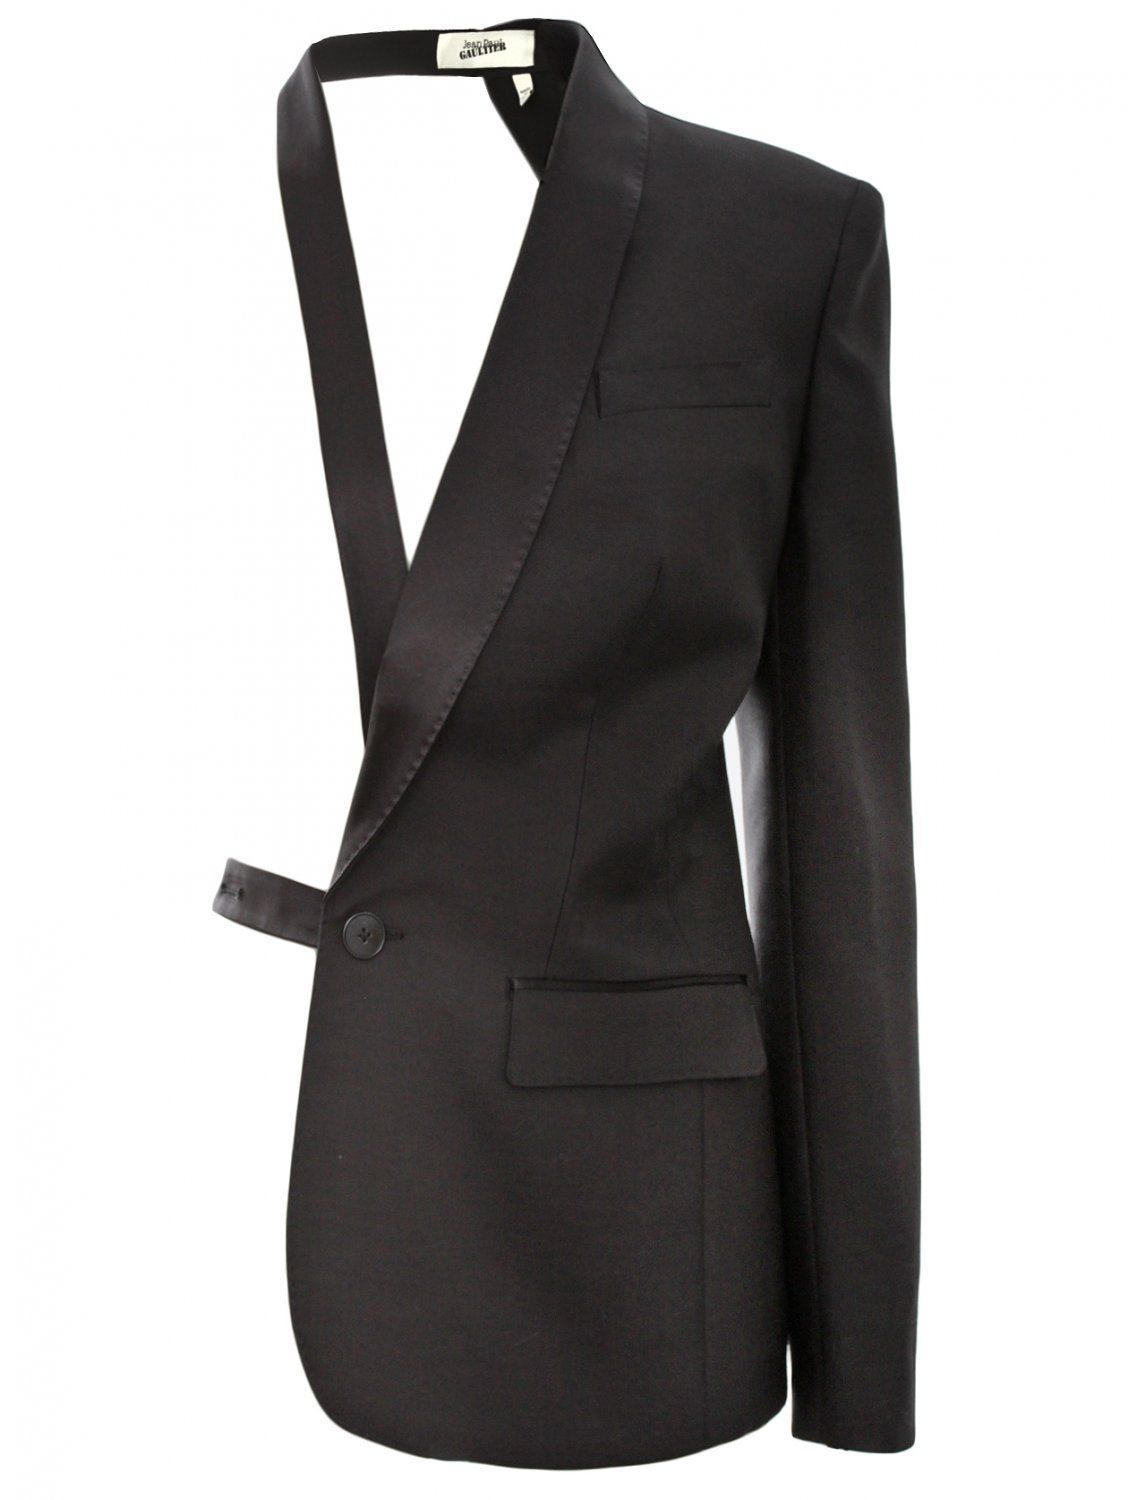 c4a286f8 Image result for half black half white suit | Fashion in 2019 ...